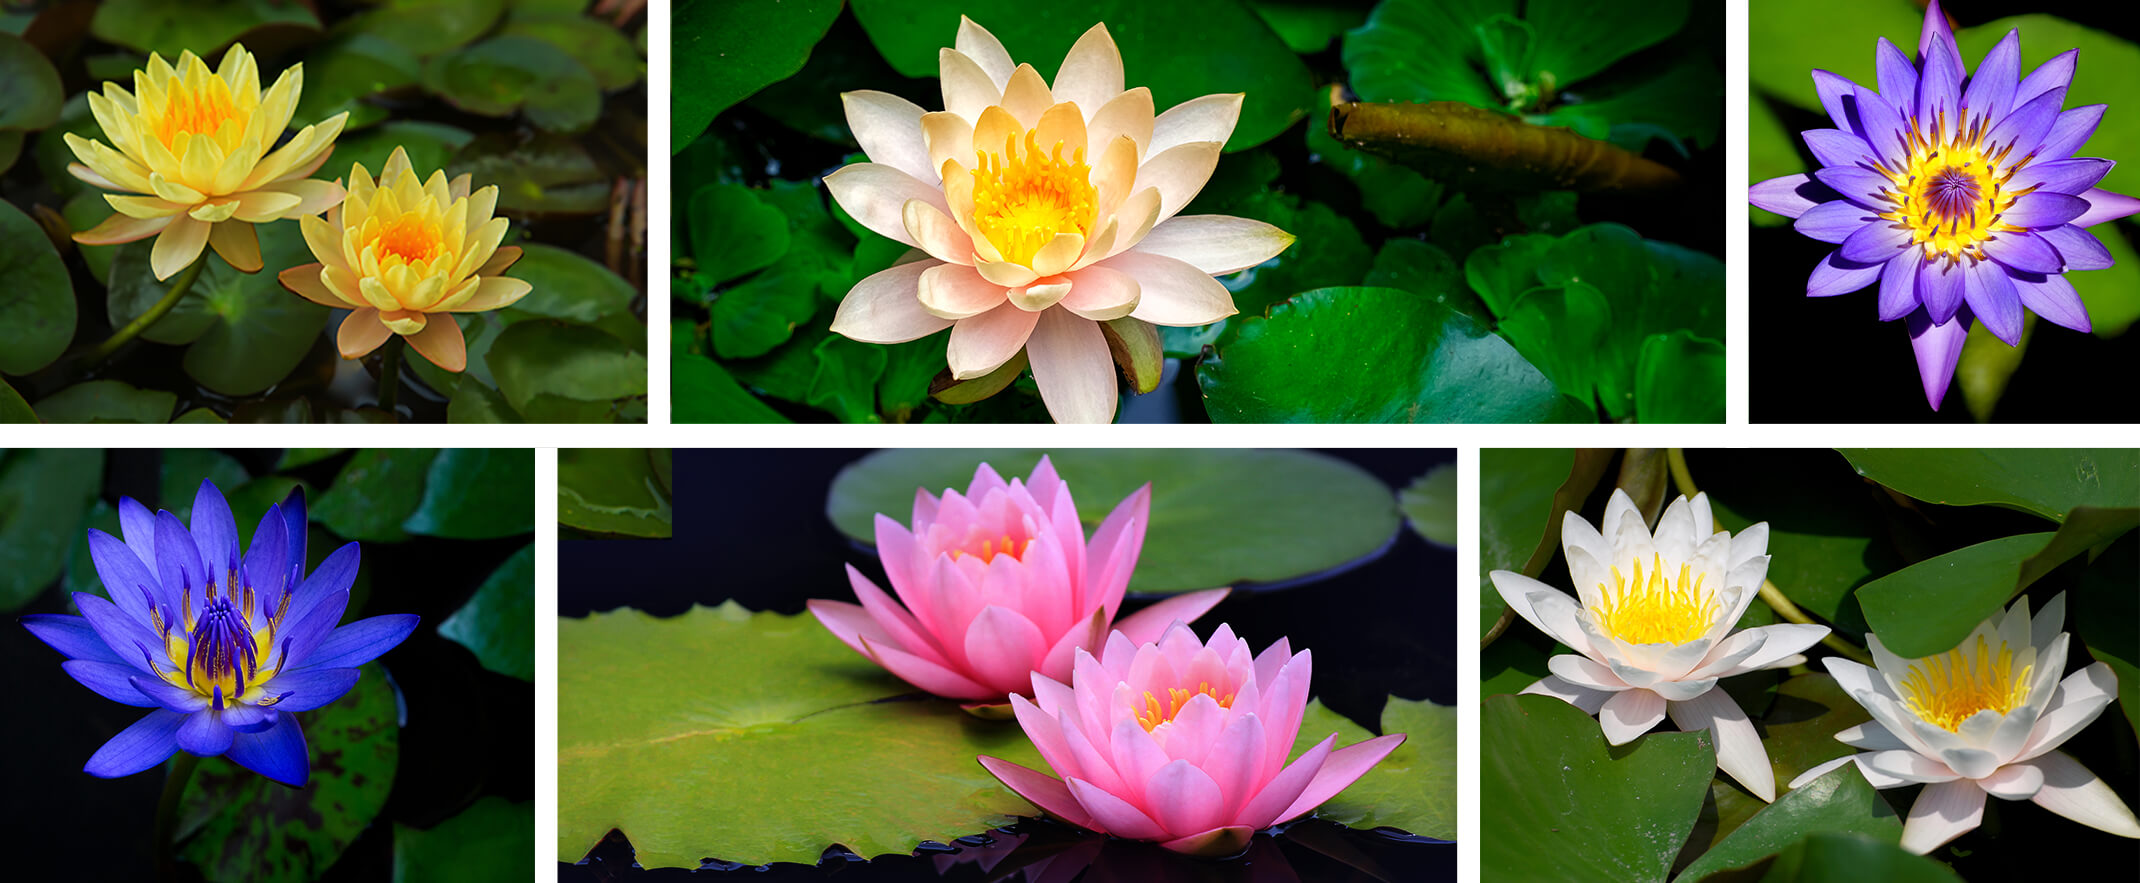 A collage of 6 different colorful water lilies - yellow, peach, purple, blue, pink and white